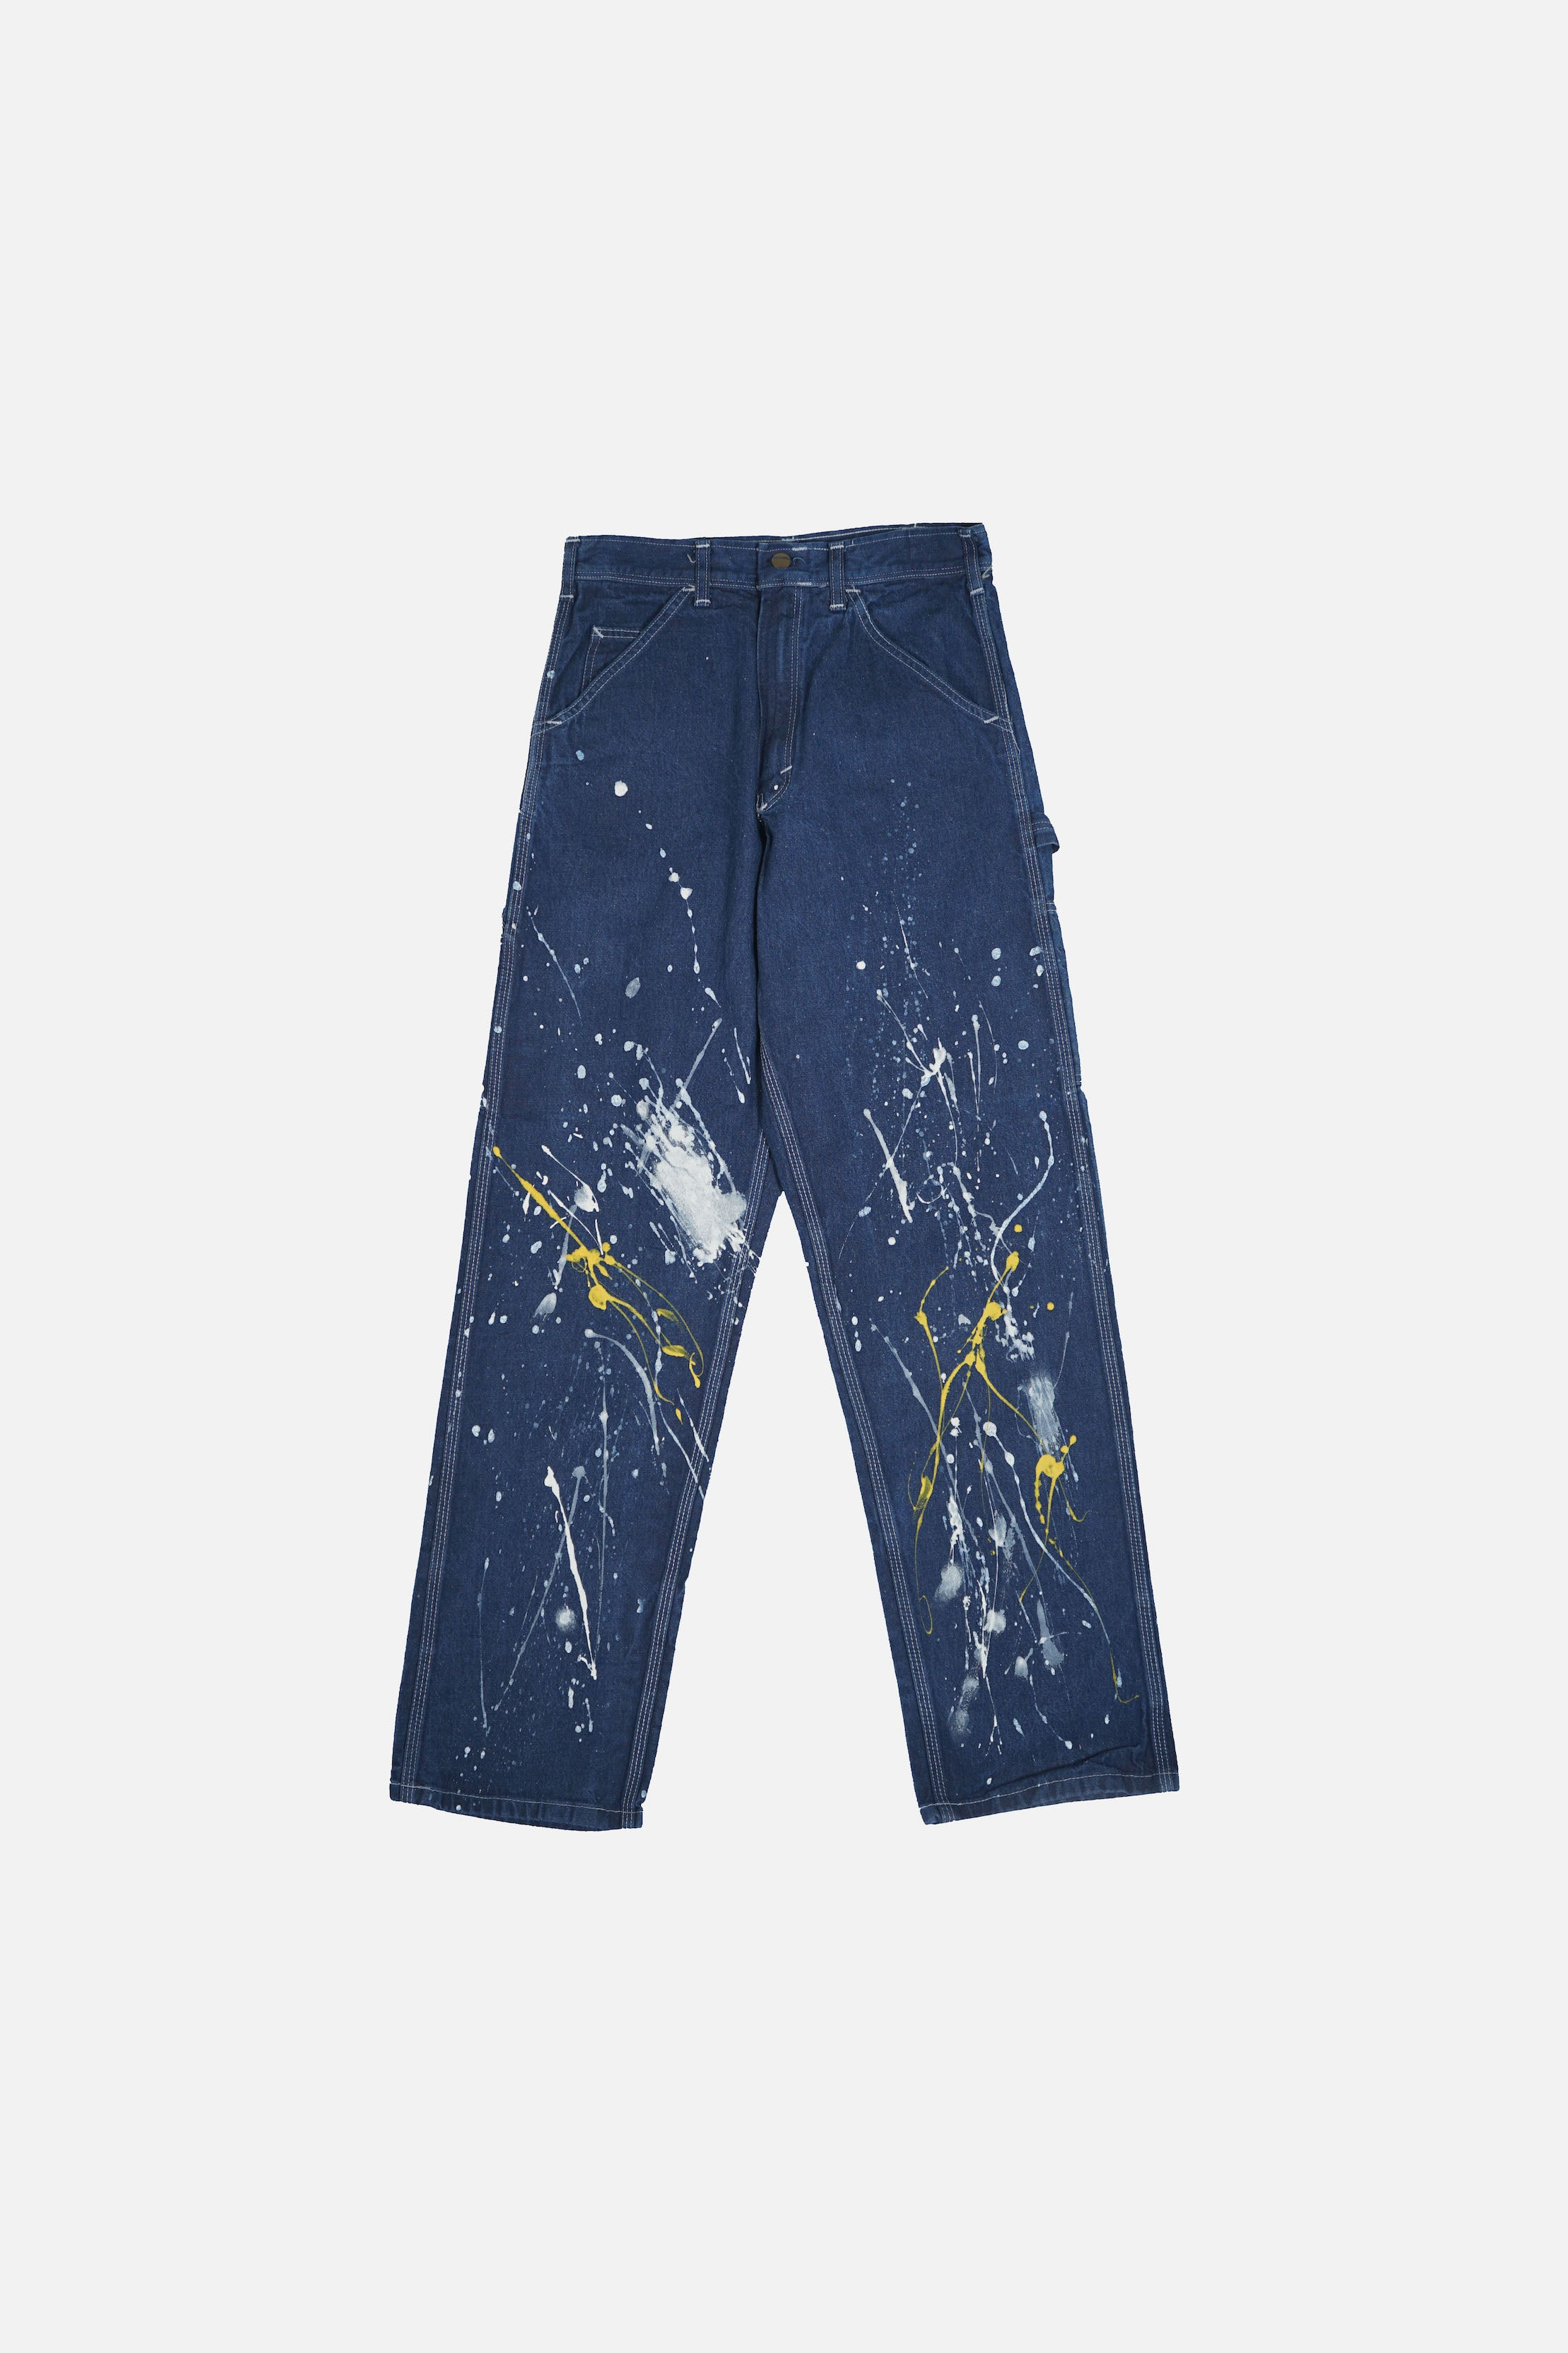 Splatter Painted Carpenter Pants W29